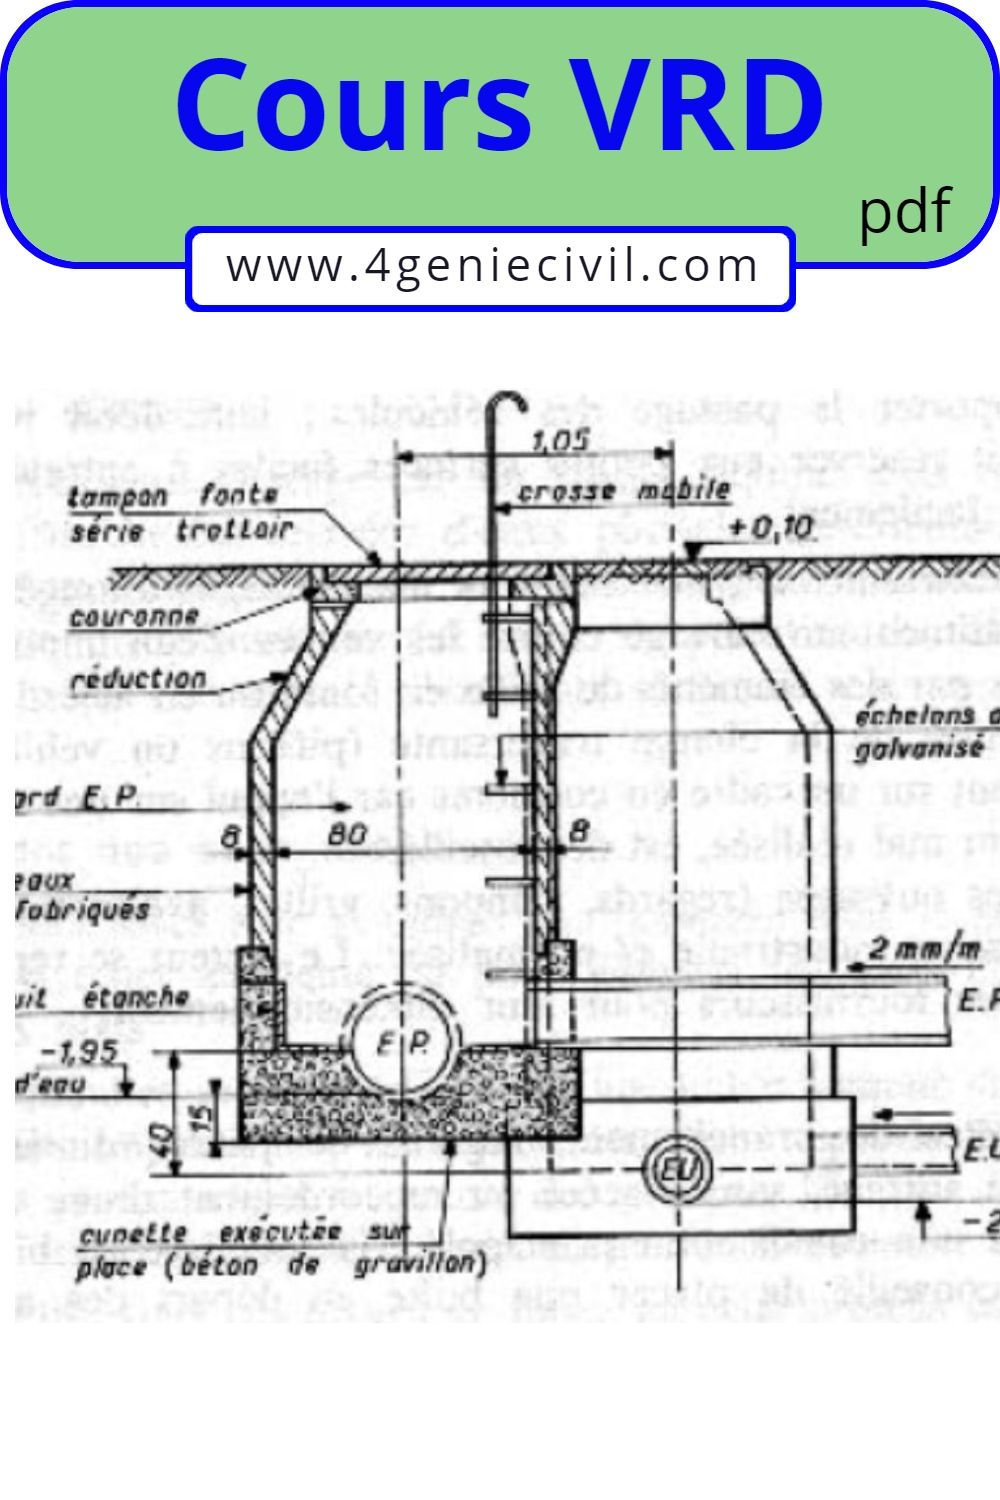 Cours Vrd Genie Civil Pdf In 2021 Floor Plans